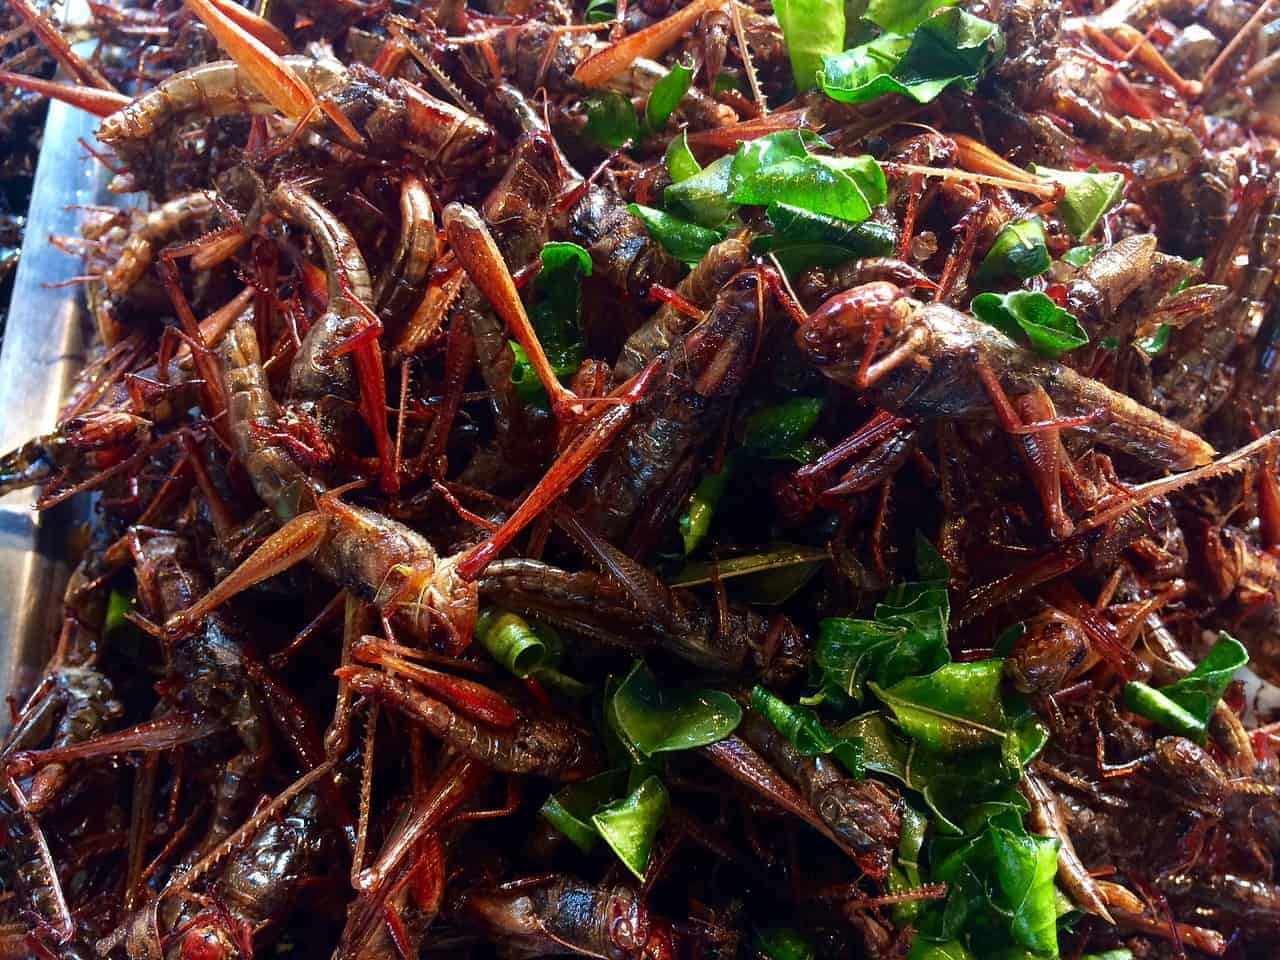 if you think about Eating Insects In Thailand, choose grasshoppers